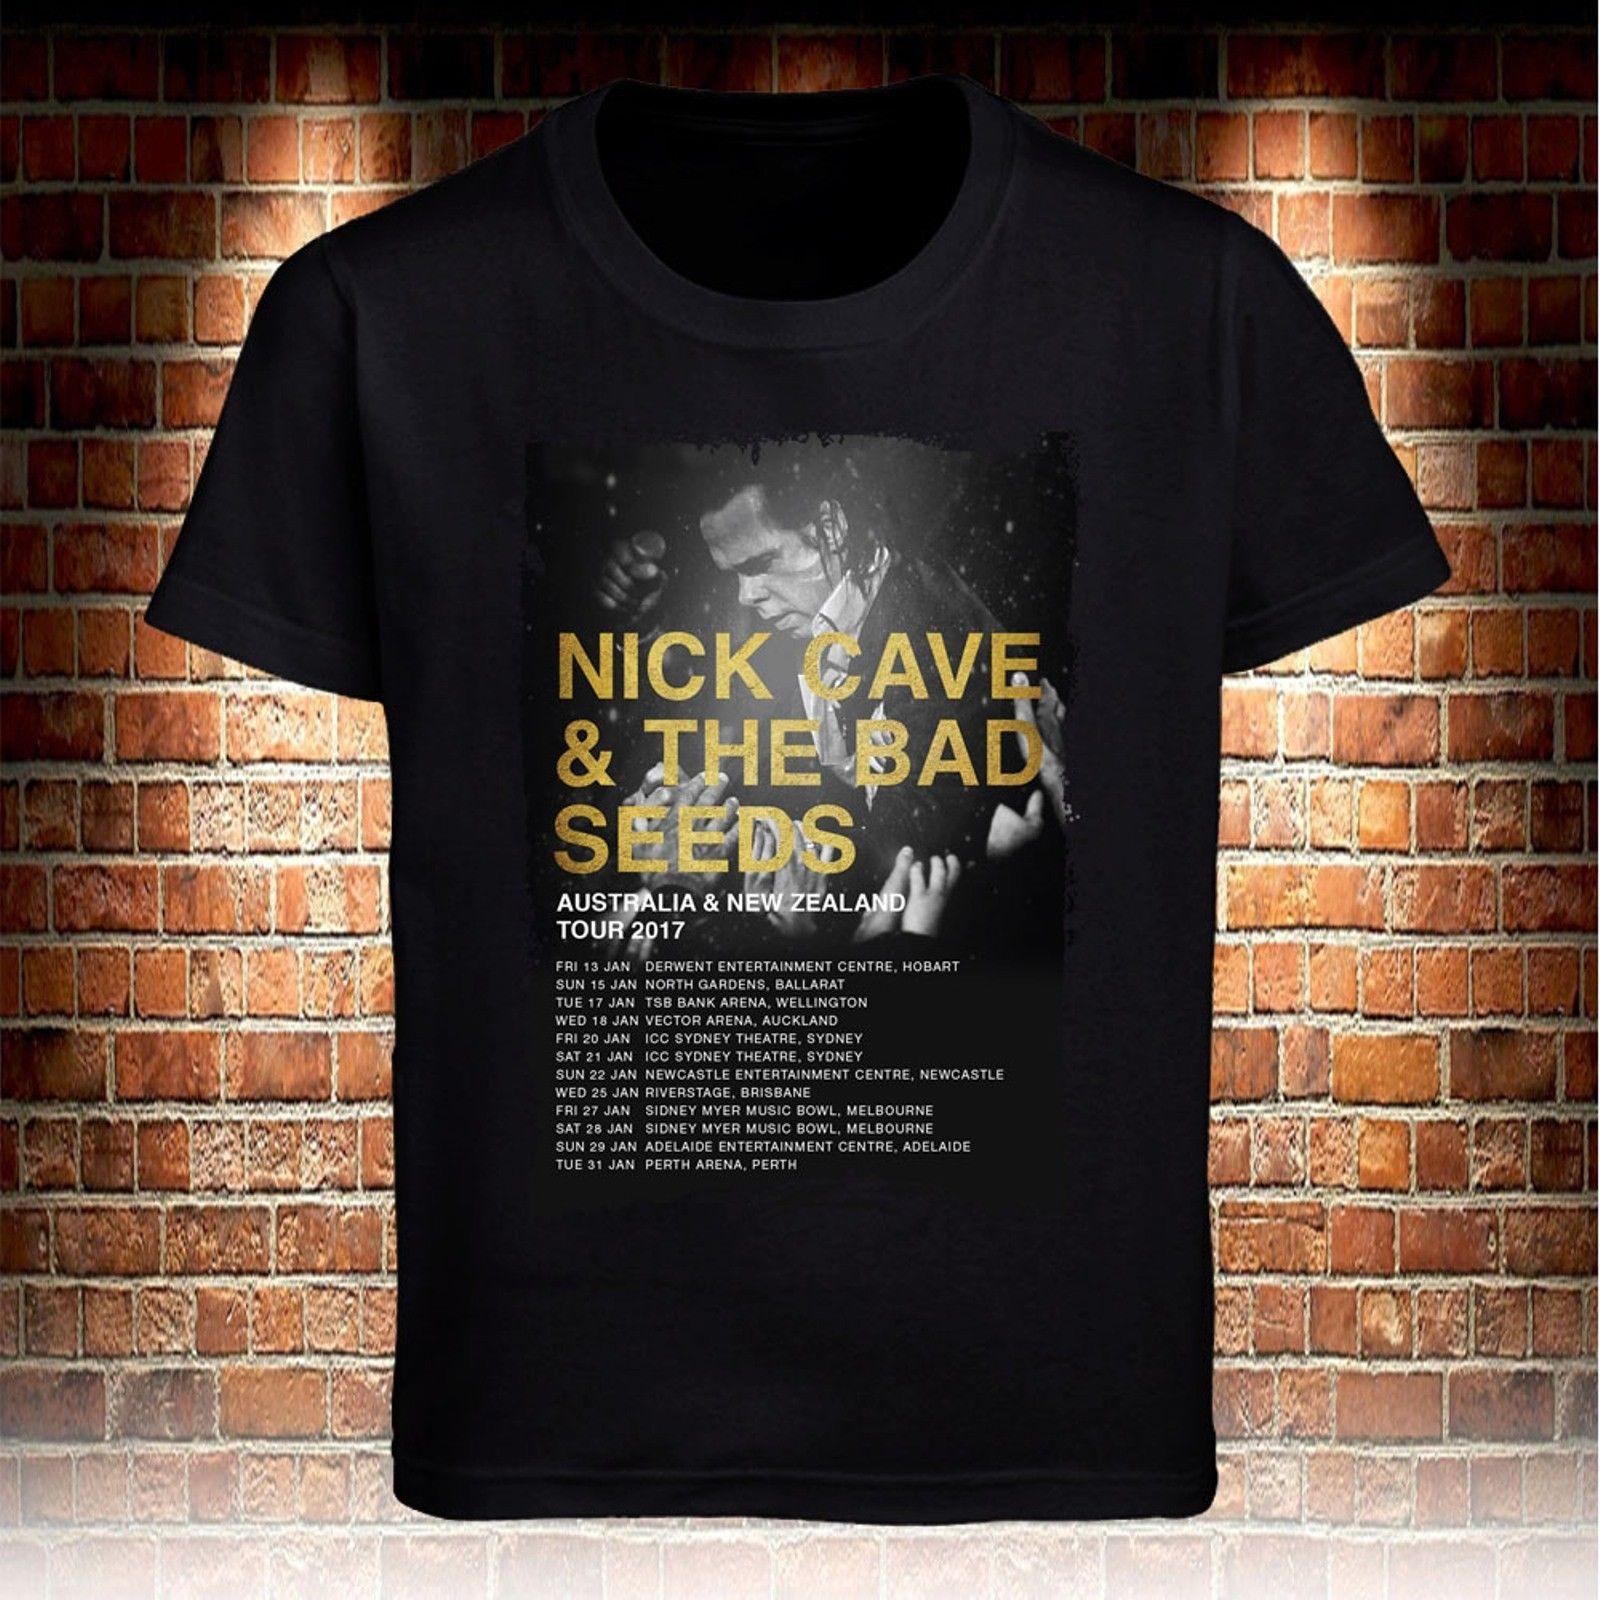 5d6b0fa0 Black T Shirts Nick Cave & The Bad Seeds Australia & New Zealand Tour 2017 S  3XL Funny Unisex Buy Tee Top T Shirt Sites From Fantees, $12.96  DHgate.Com